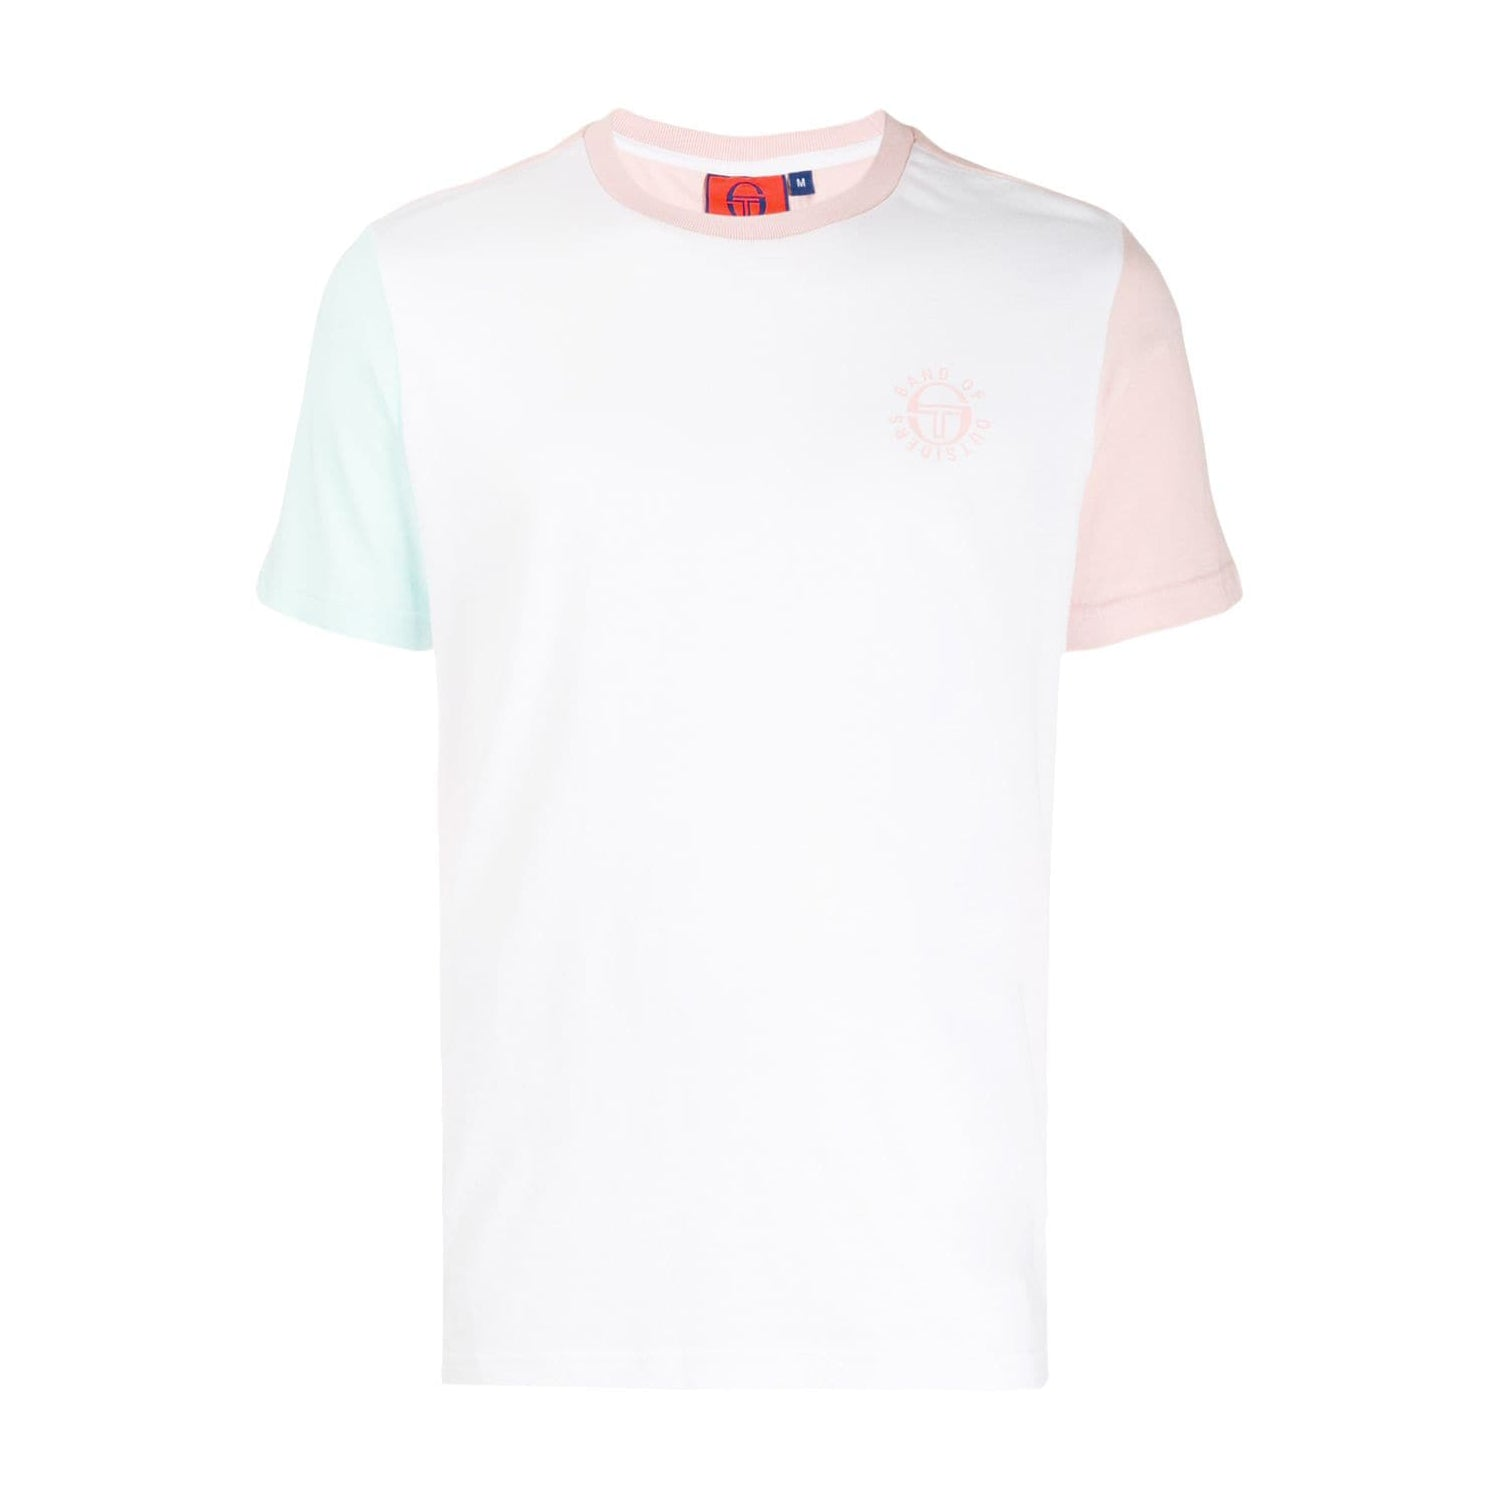 SERGIO TACCHINI X BAND OF OUTSIDERS COLOR BLOCK T-SHIRT WHITE